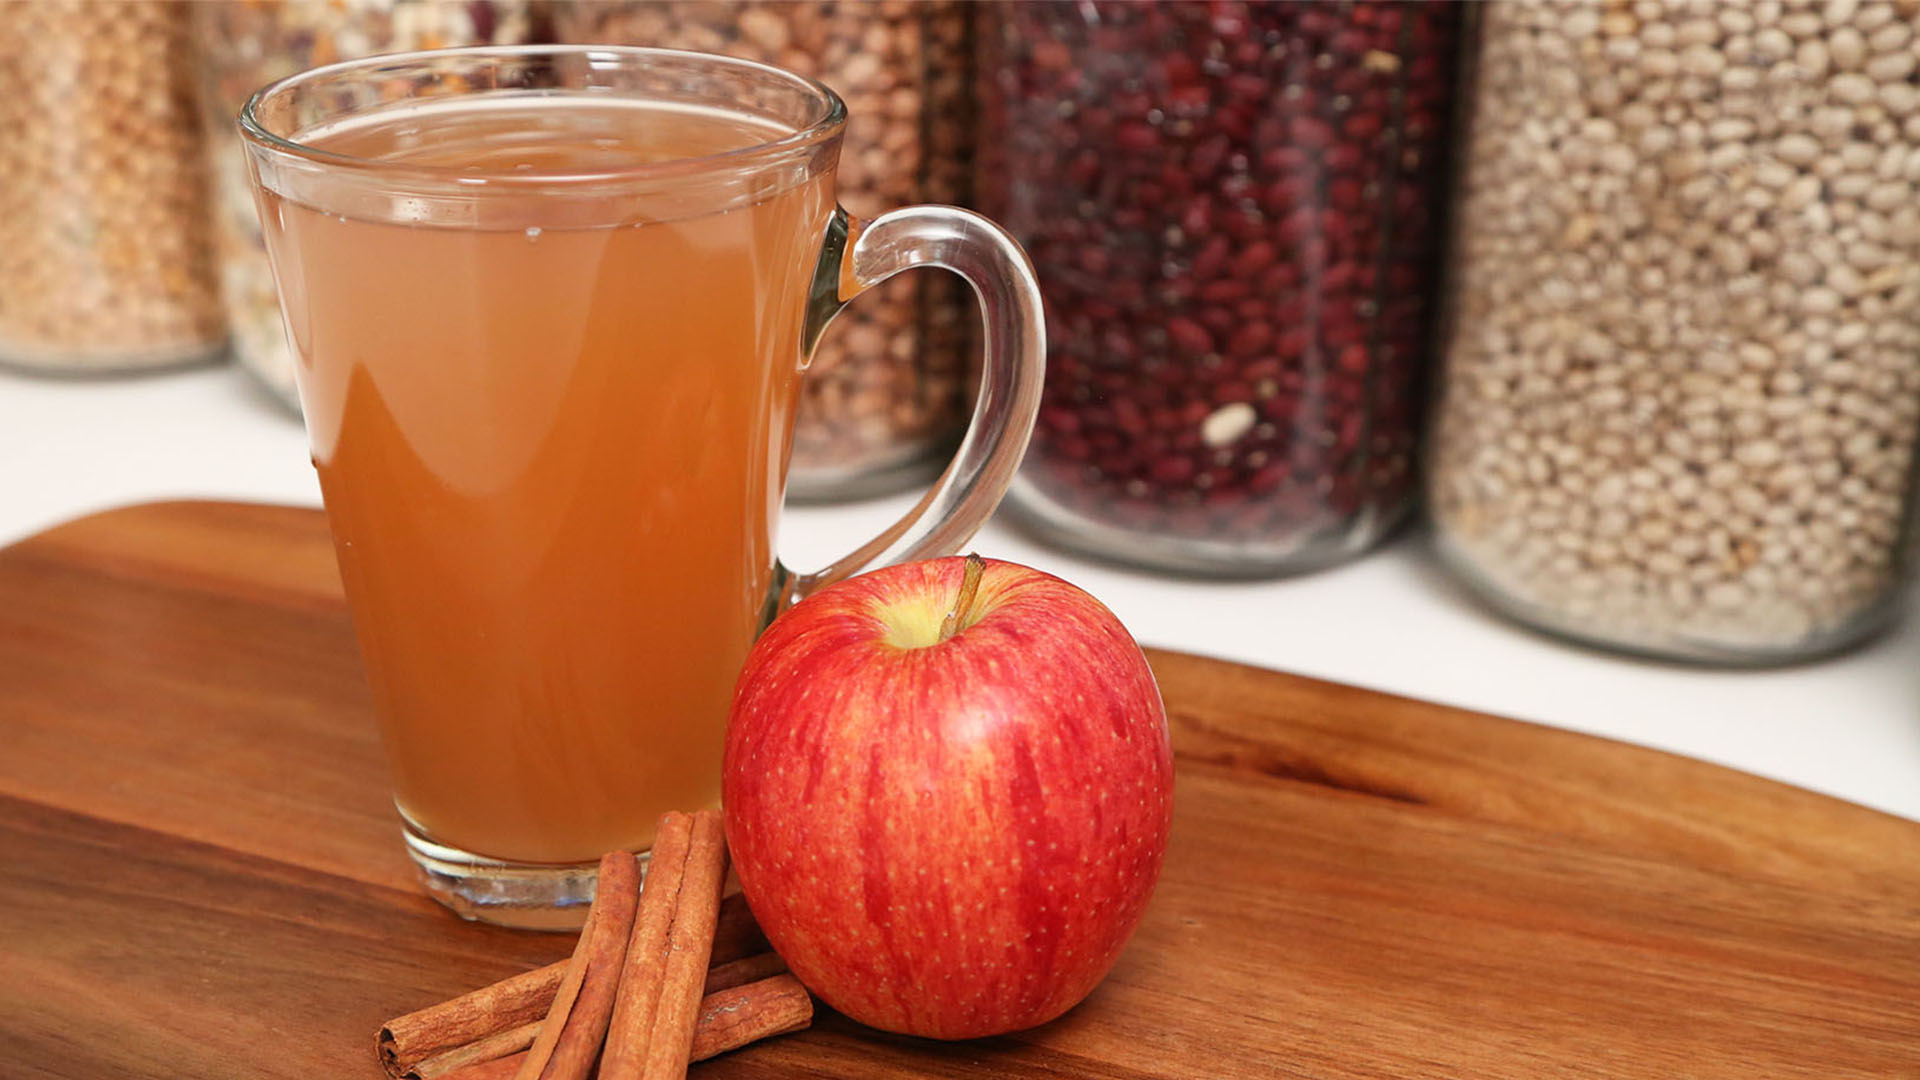 Homemade-Apple-Cider 16x9